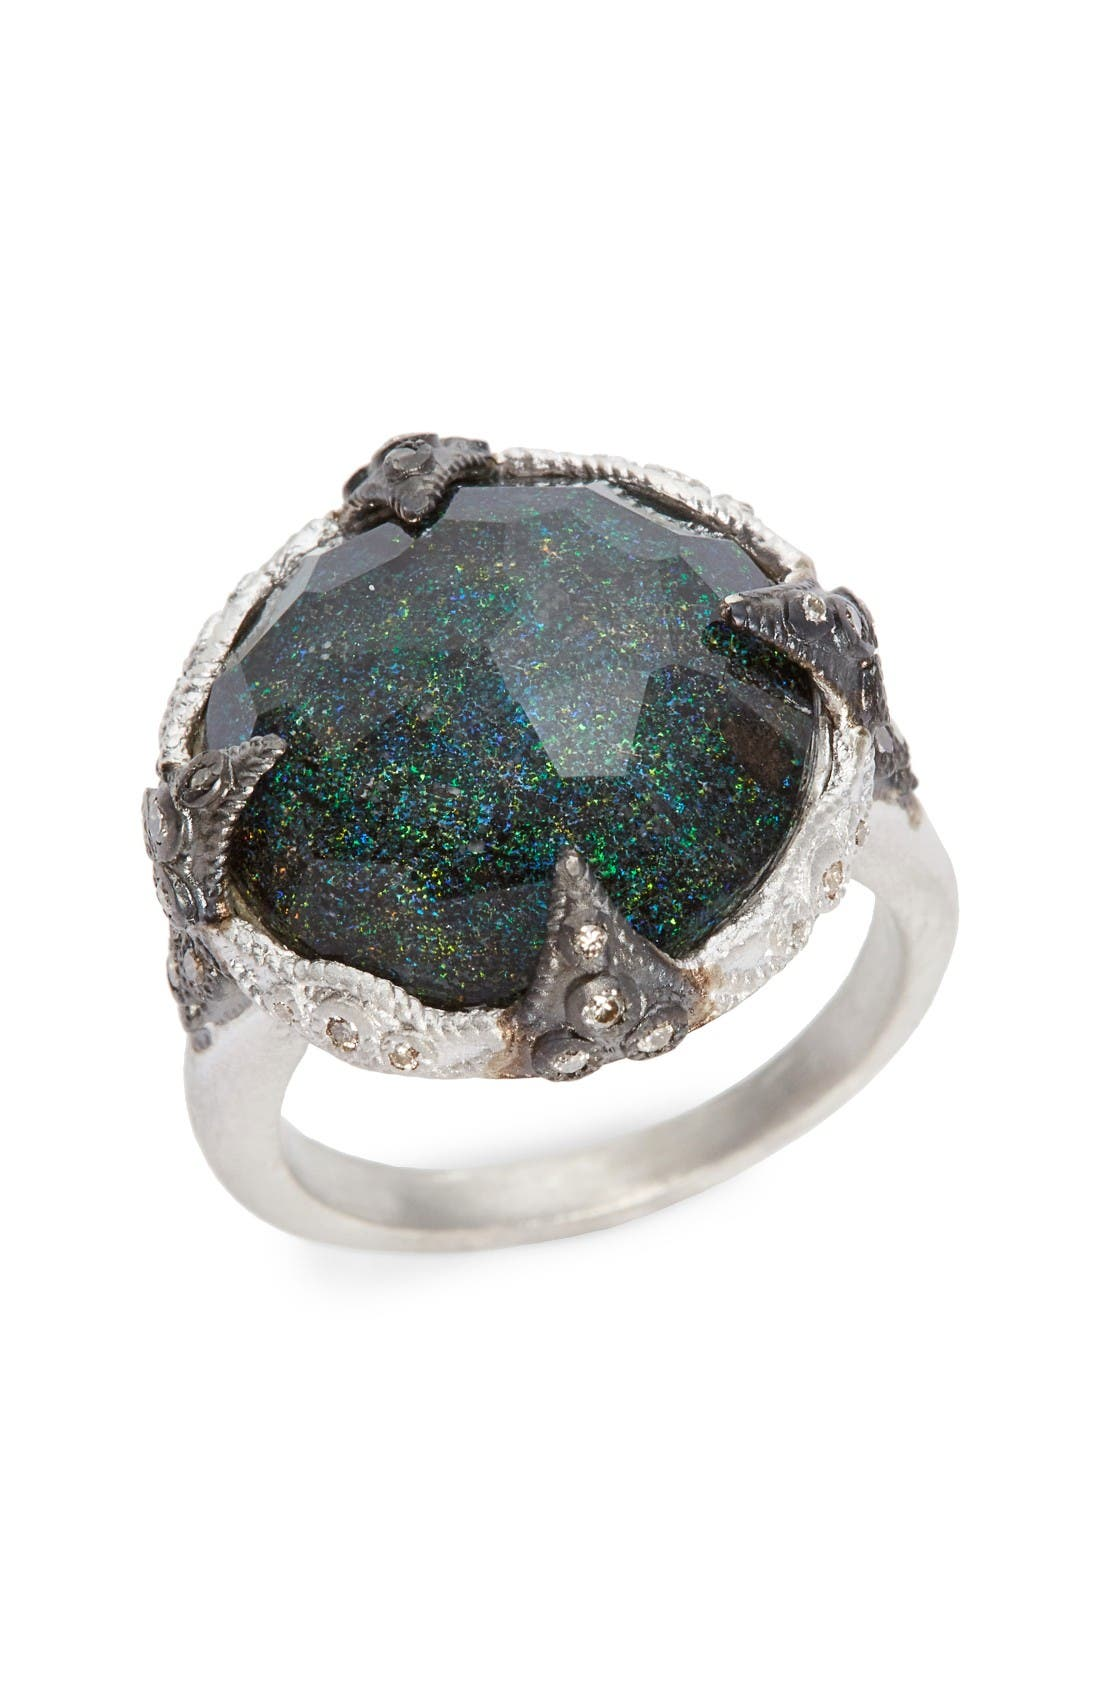 Main Image - Armenta New World Black Opal Crivelli Ring